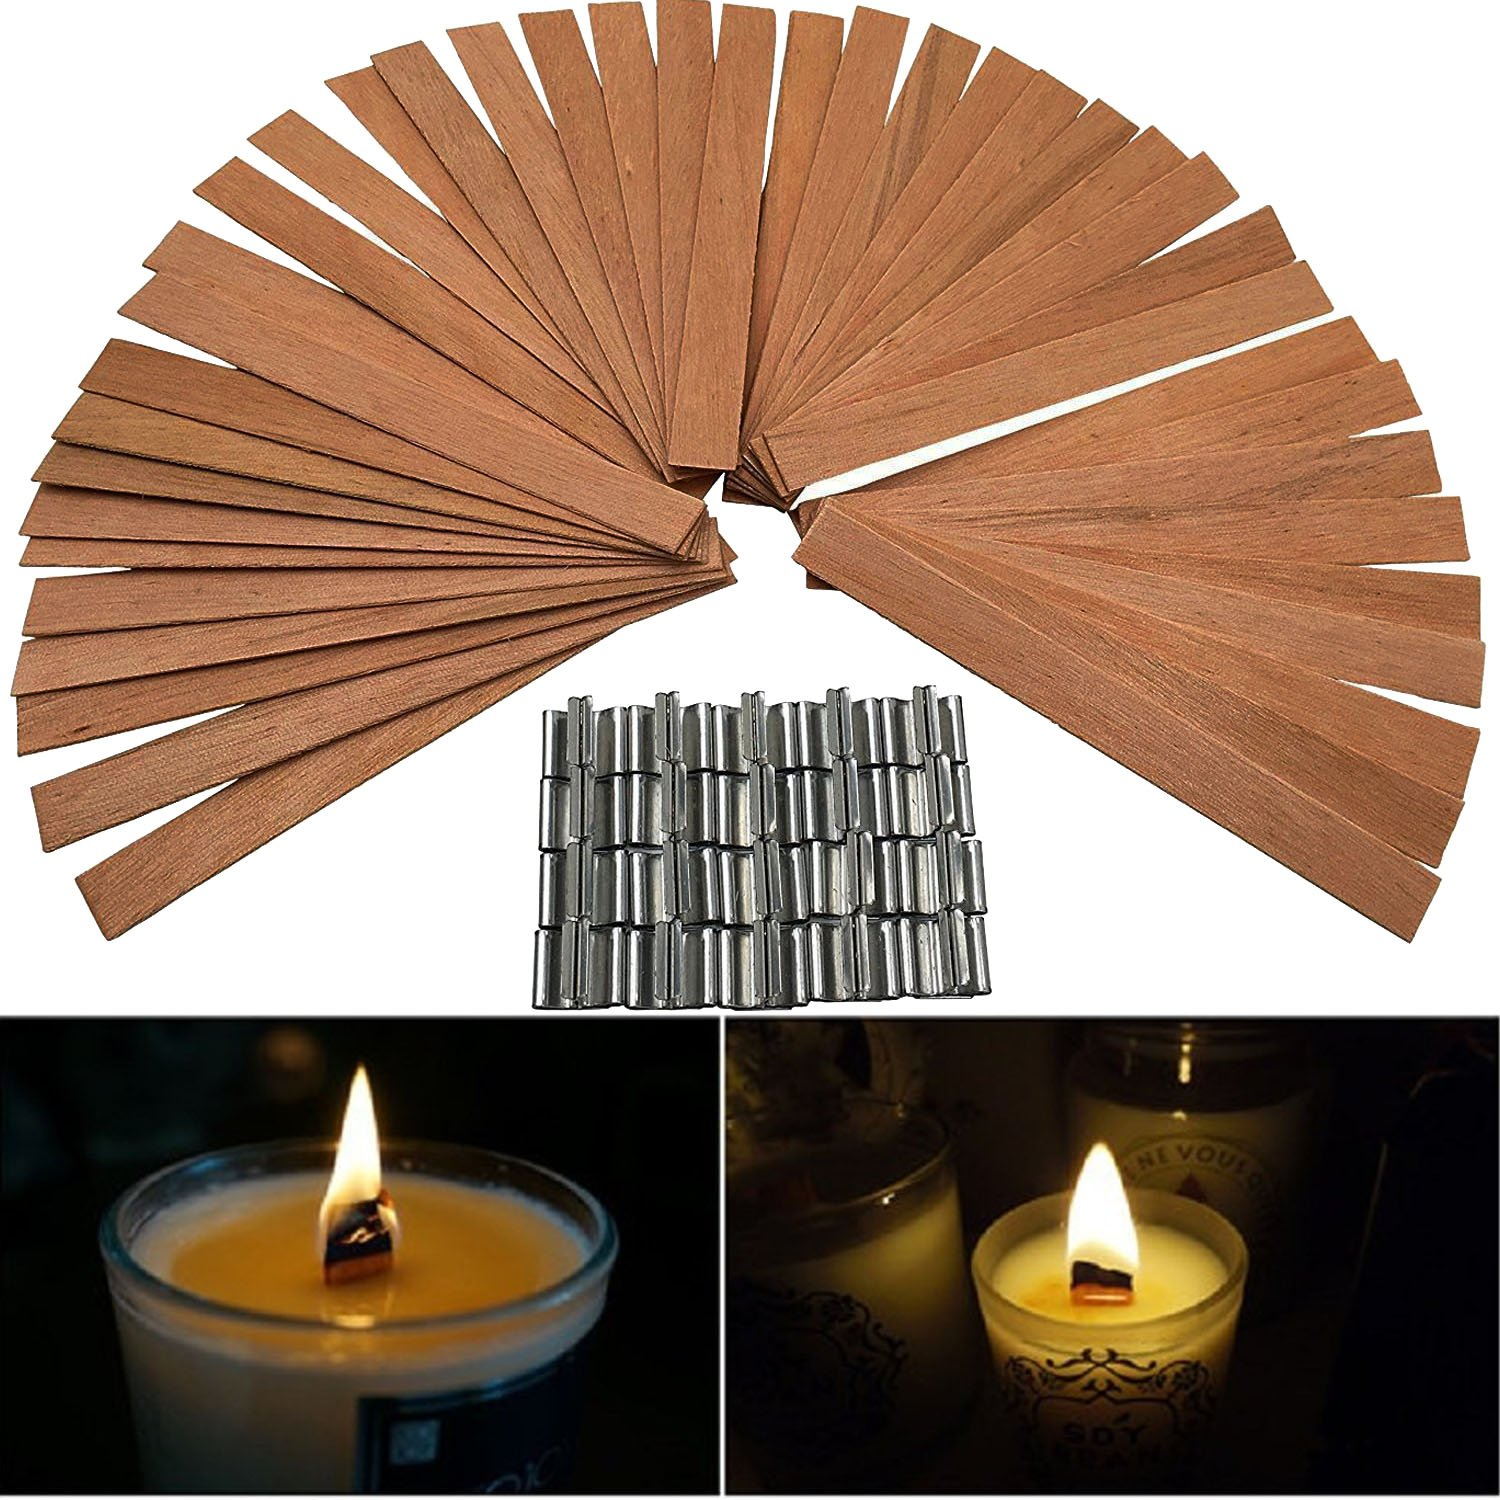 Valys 50 Piece 5 Wood Candle Wicks for Candle DIY Making, with metal anchors